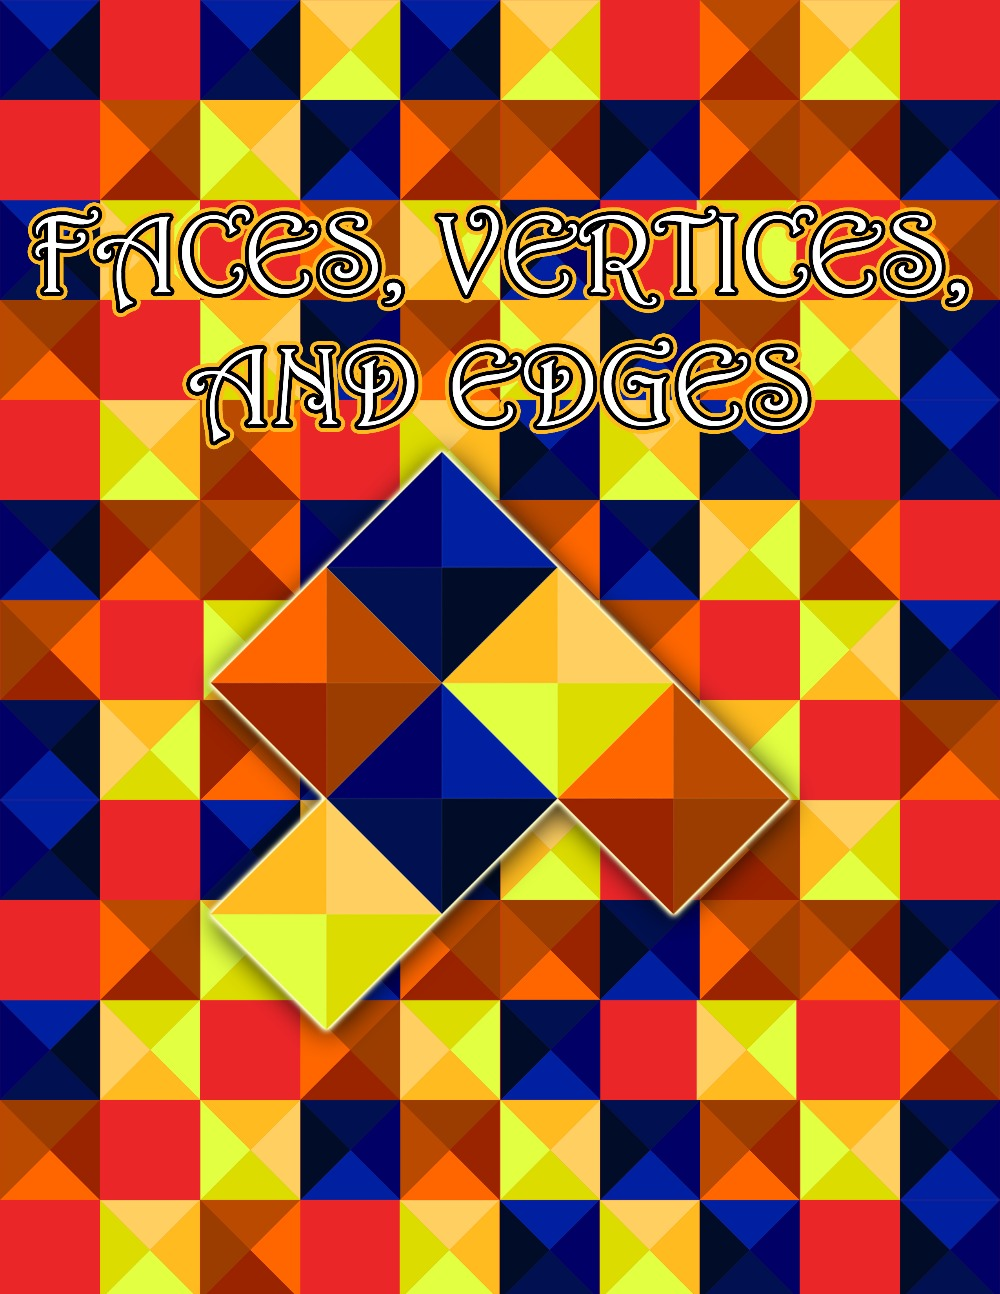 Faces, Vertices, and Edges